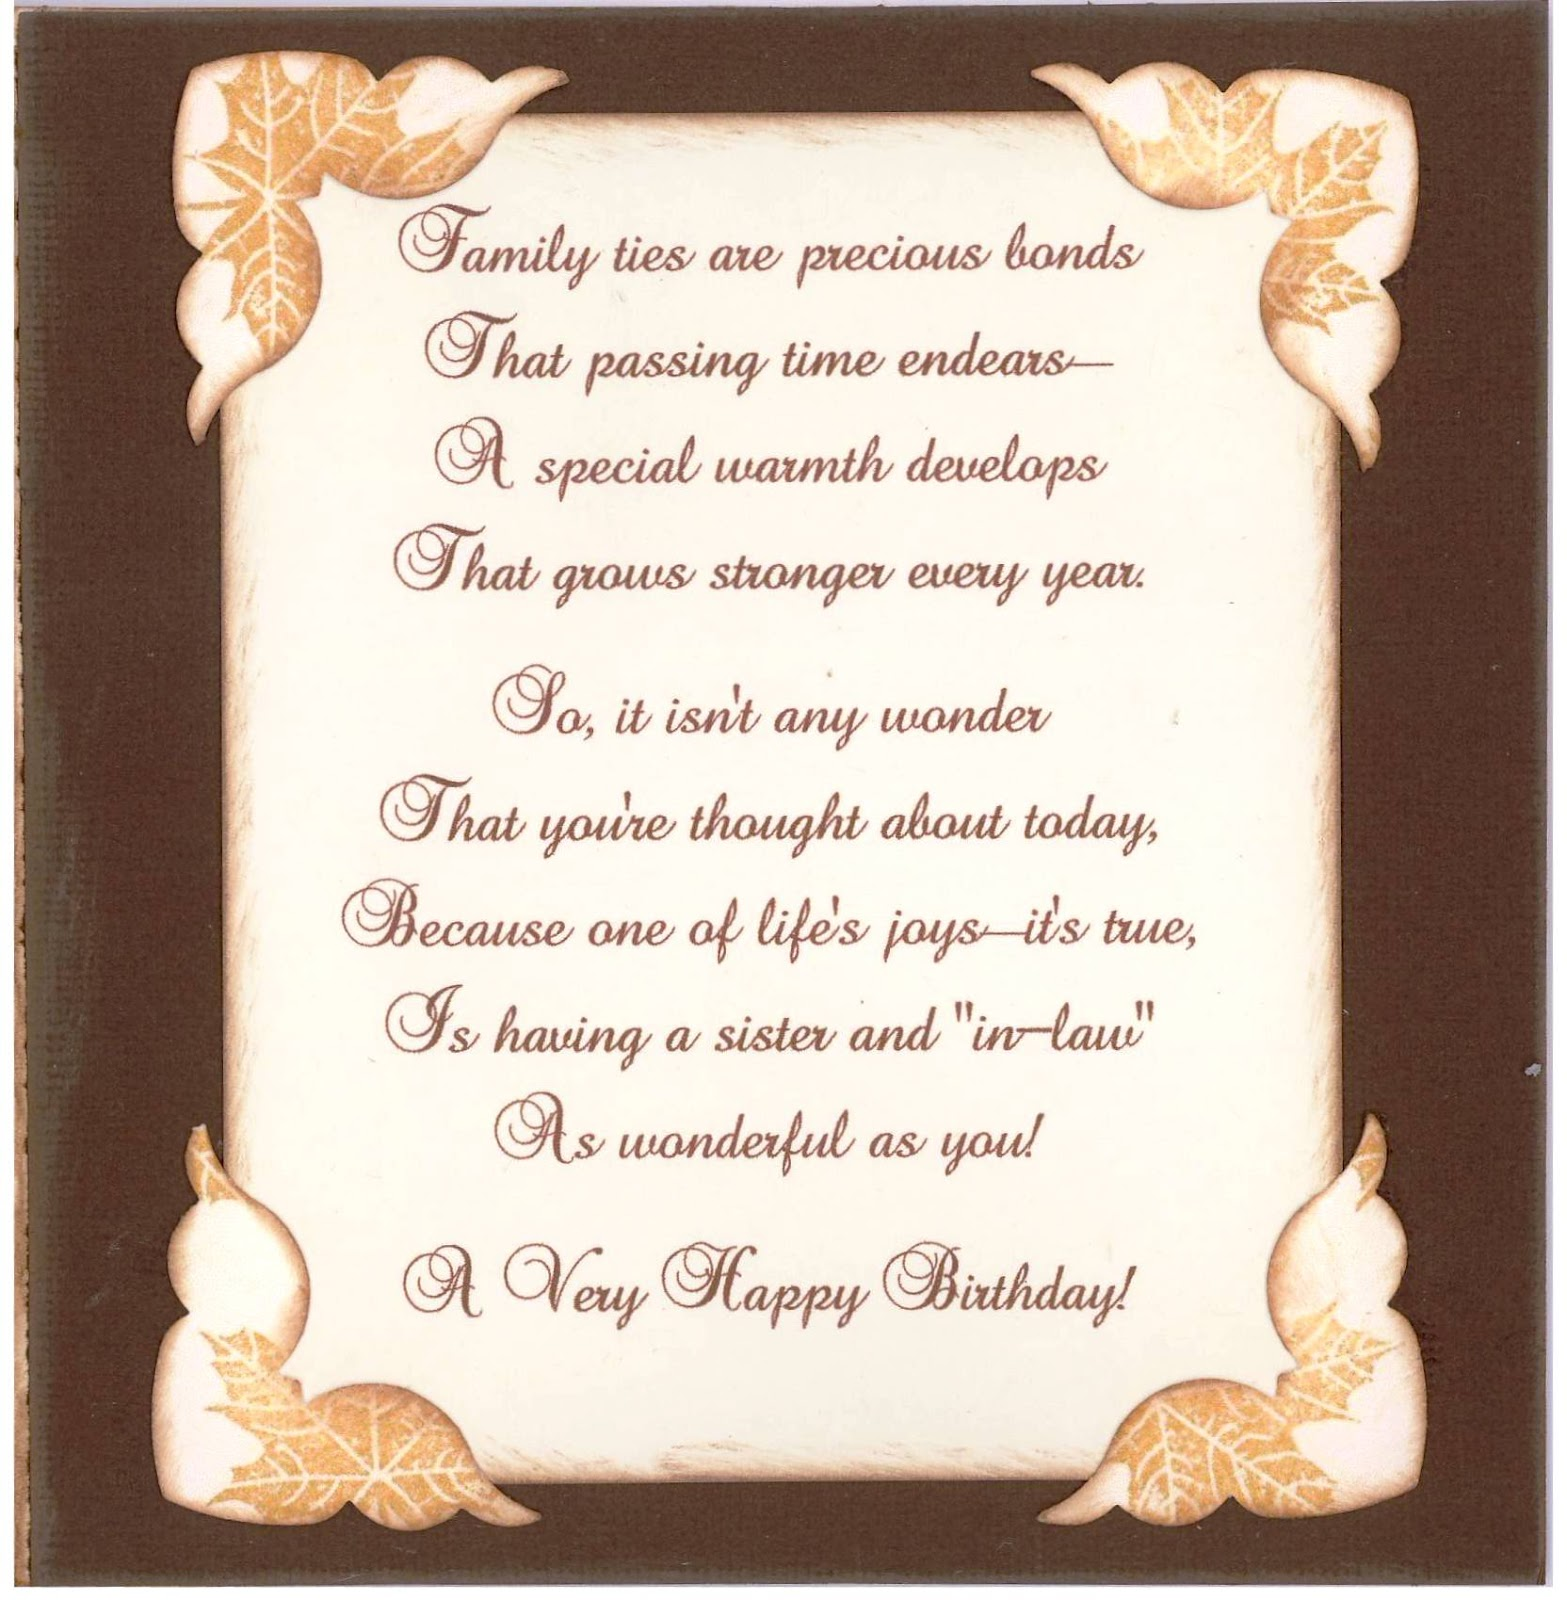 Religious Birthday Wishes Photo And Messages